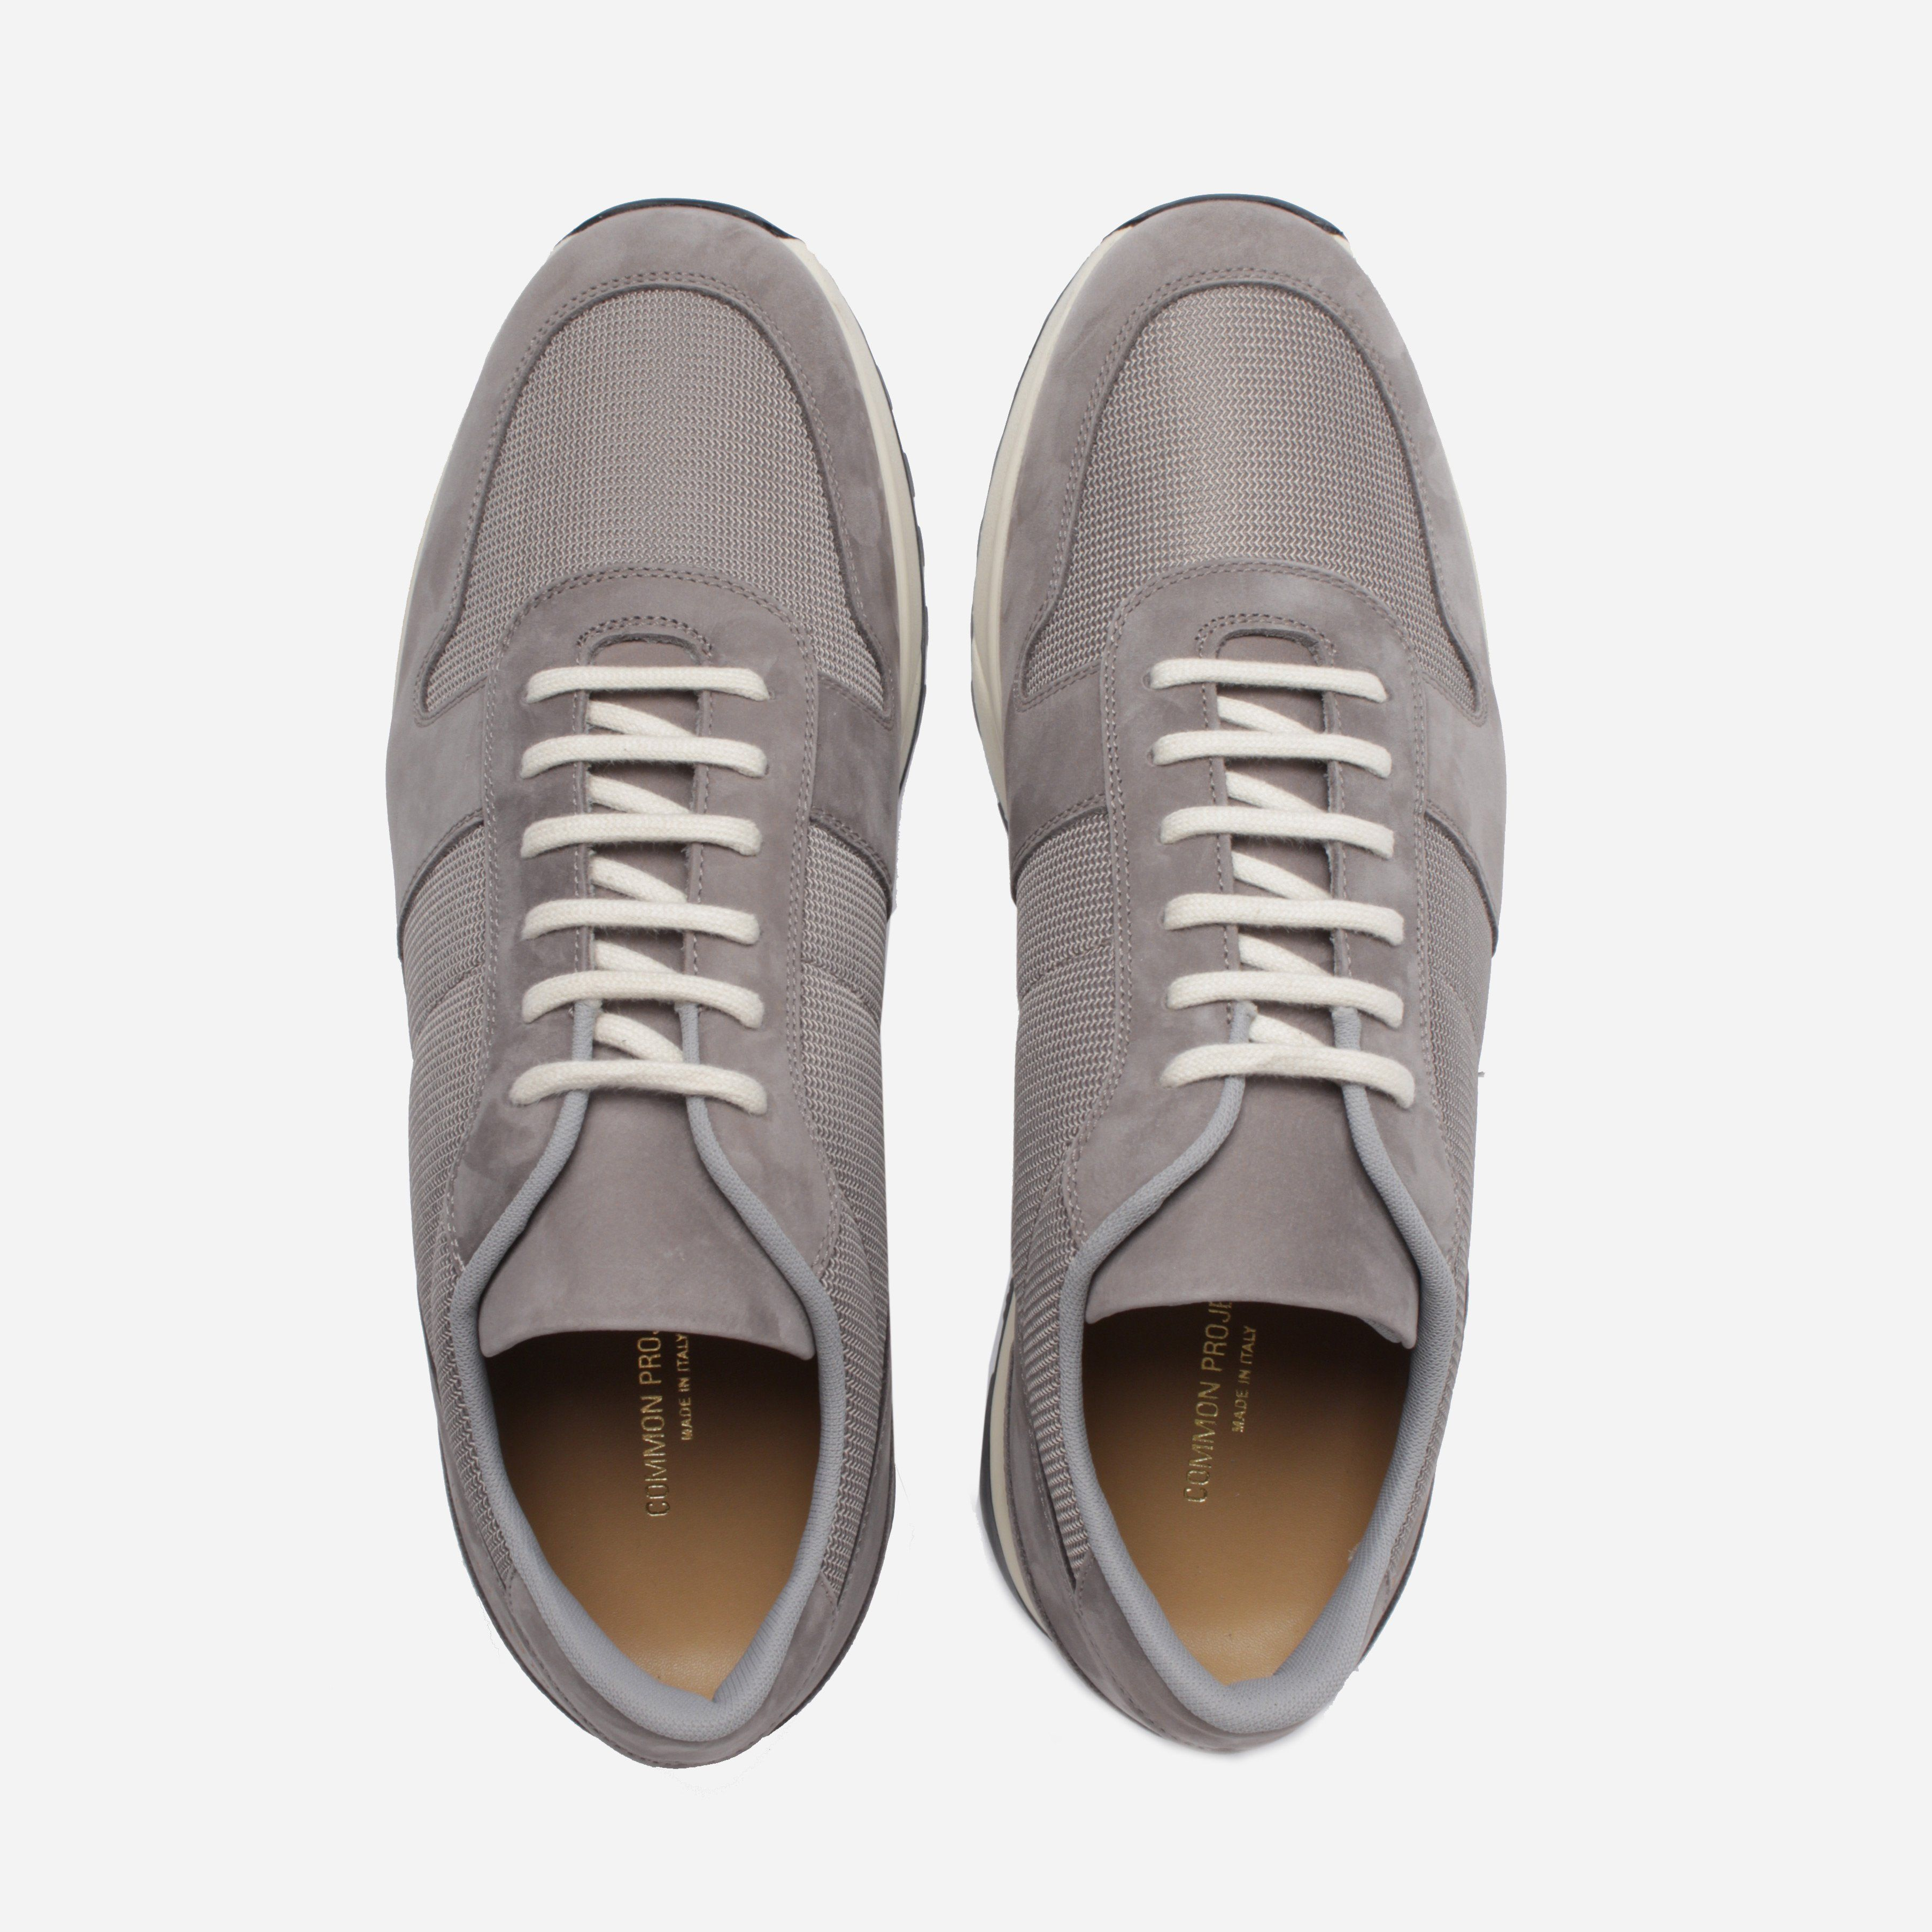 Common Projects 2164 Track Vintage